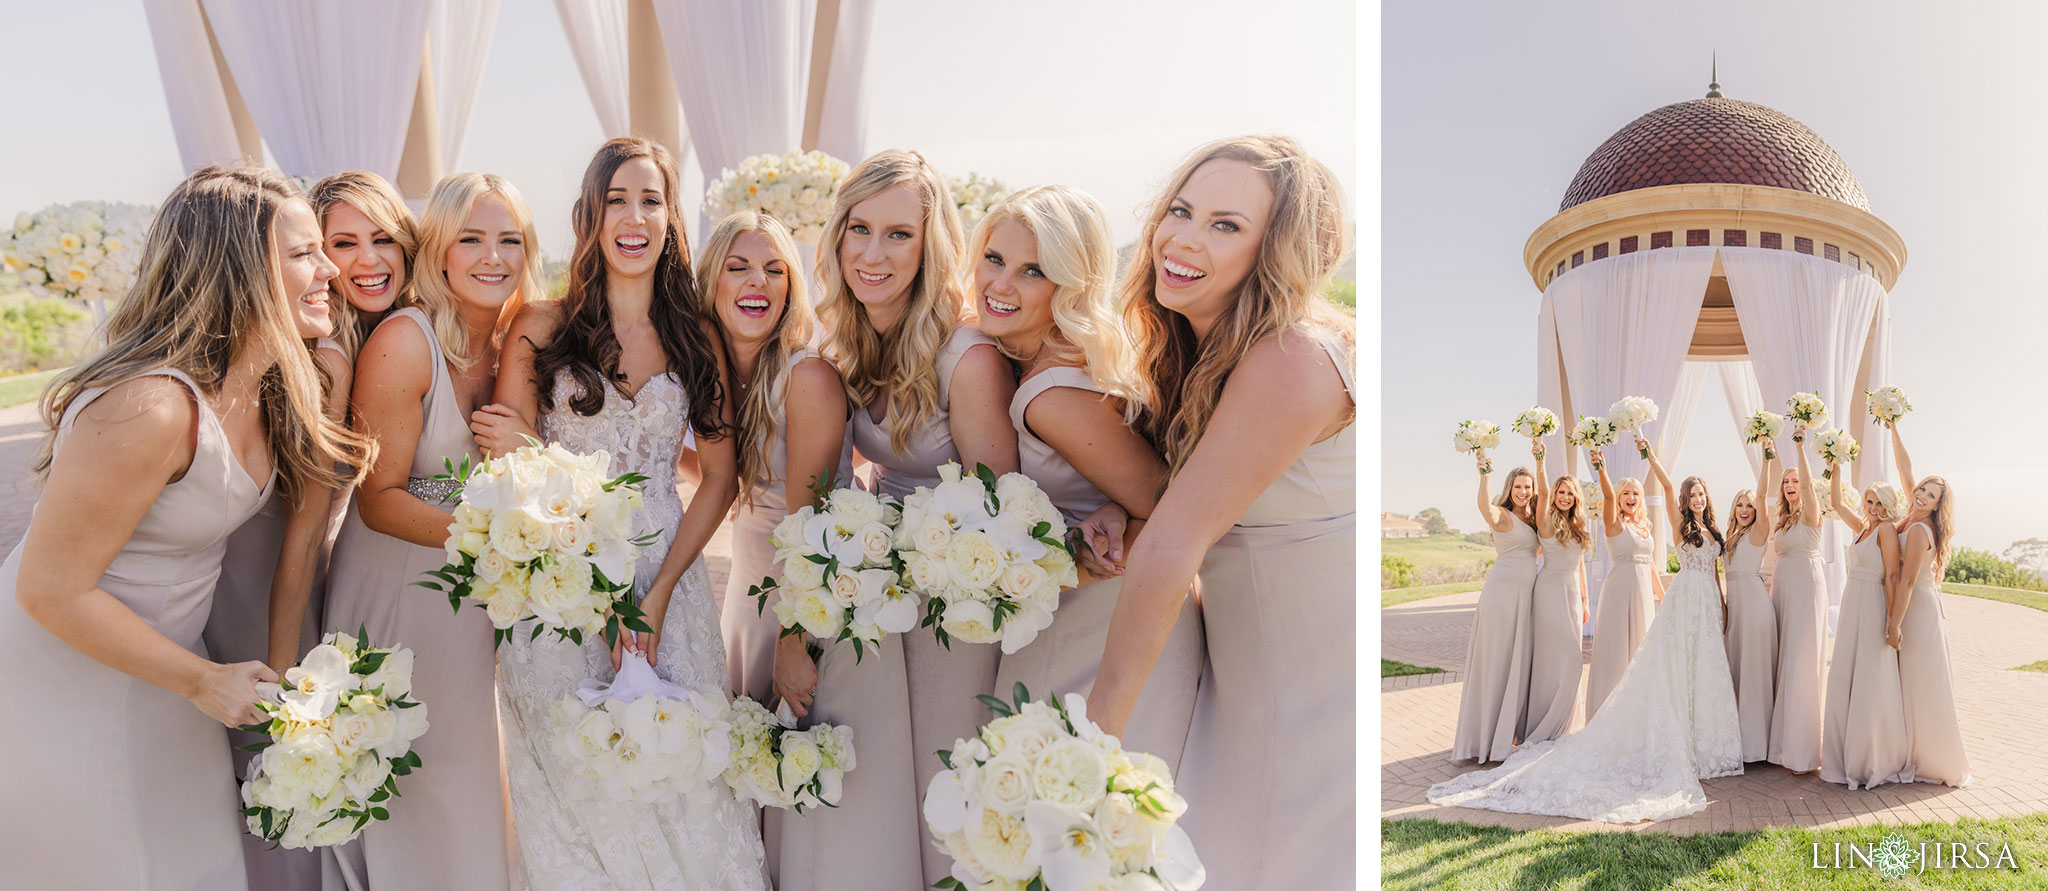 64 pelican hill orange county wedding photography